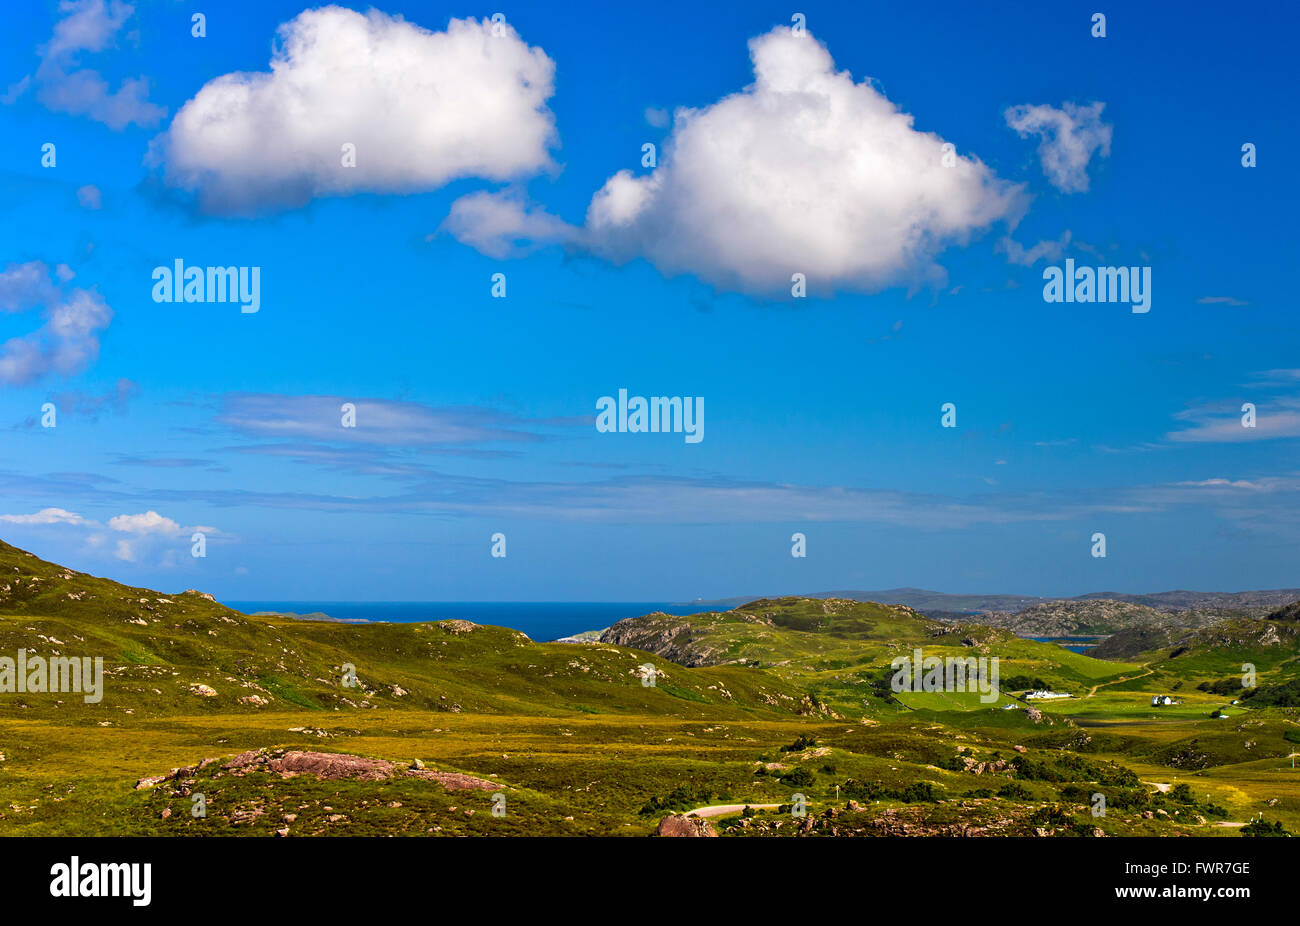 Hilly landscape in the Scottish Highlands at Lochinver, Assynt, Scotland, United Kingdom - Stock Image